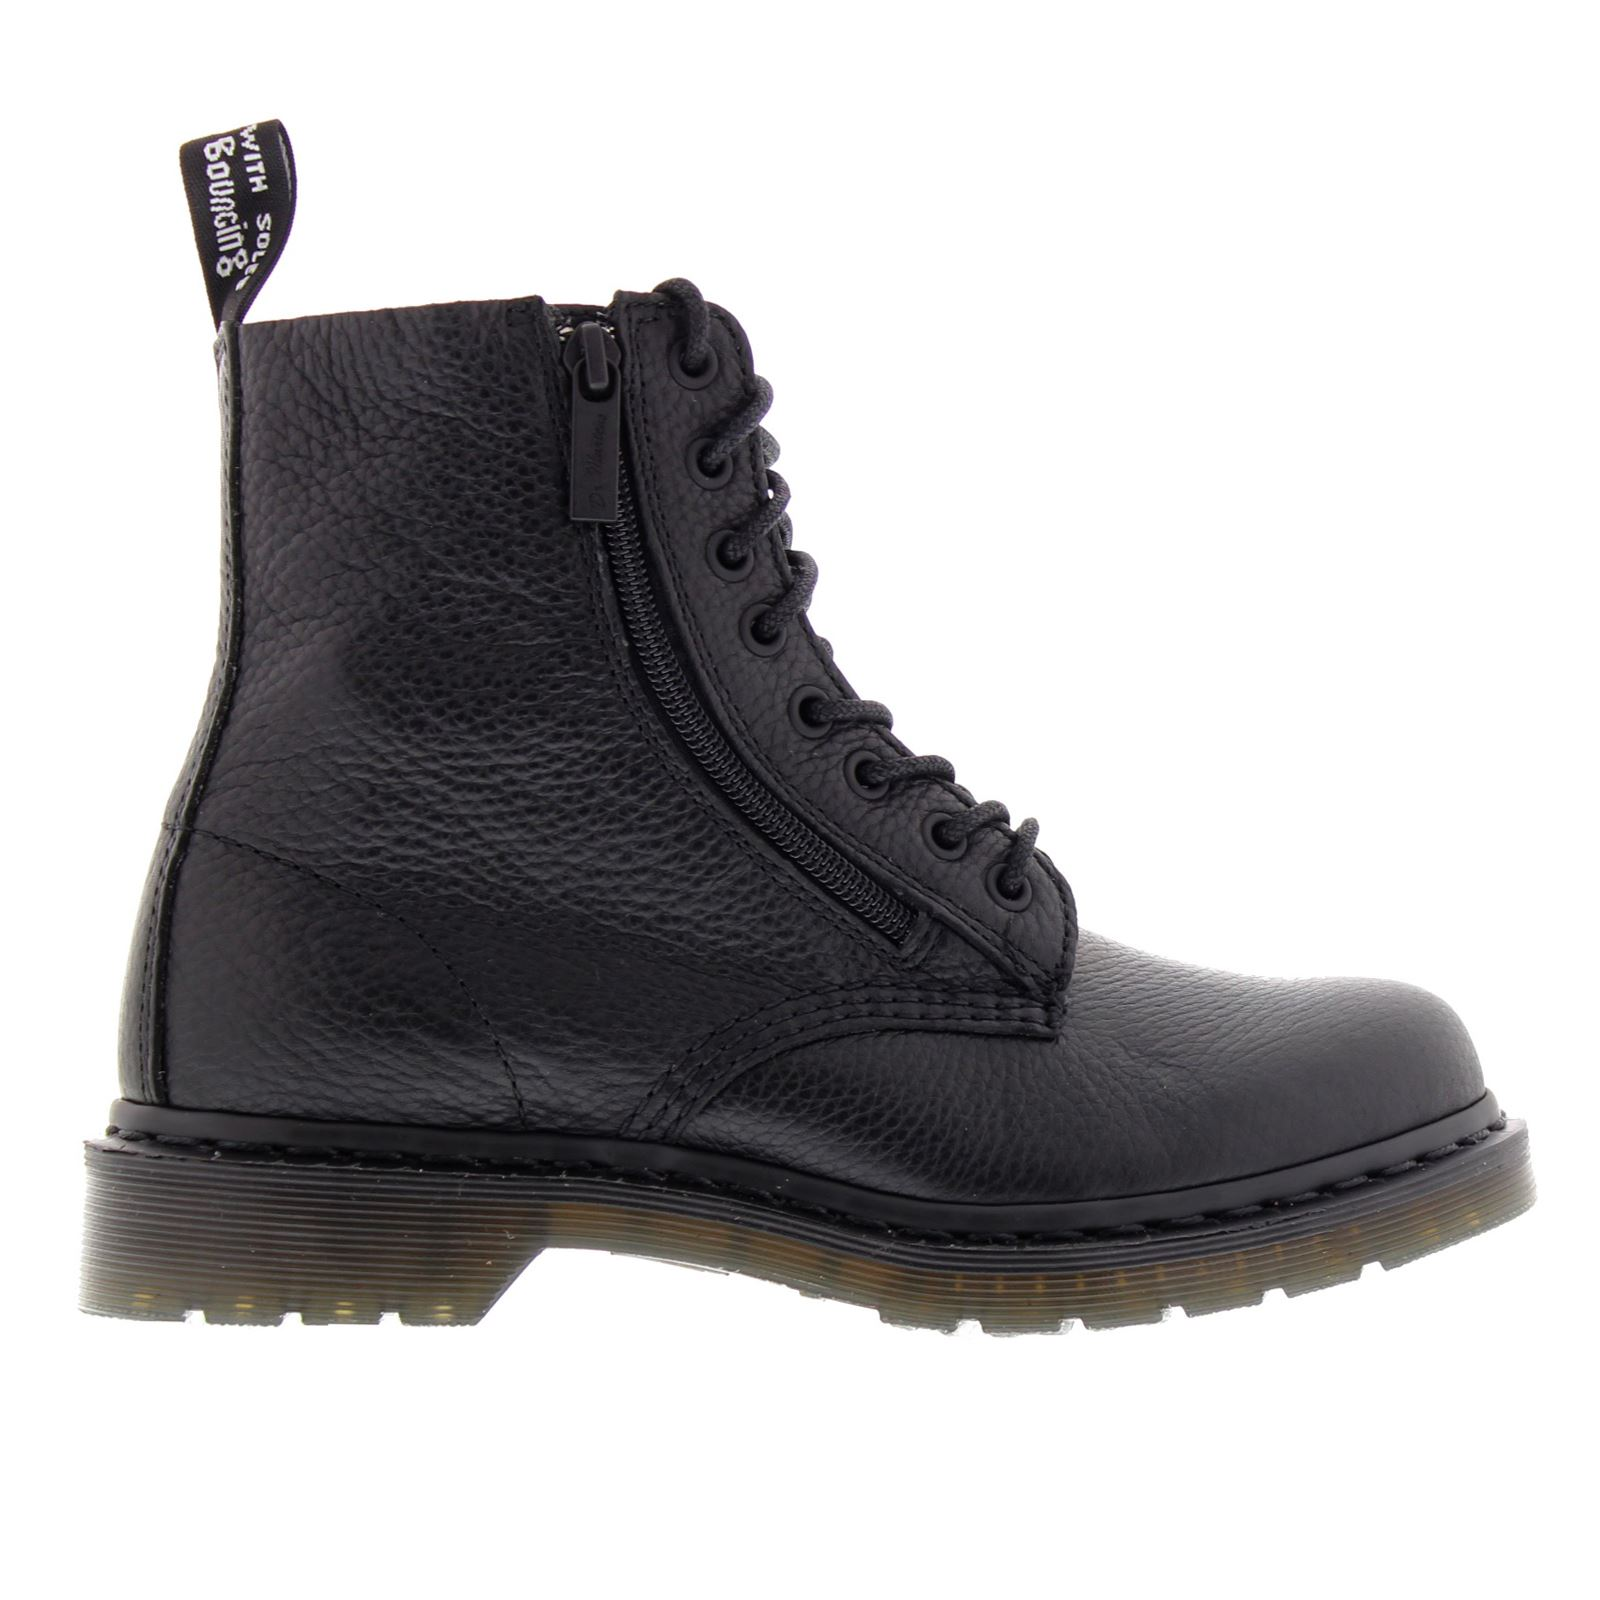 drop shipping good reputation new high Details about Dr.Martens Pascal Aunt Sally Black Womens Boots